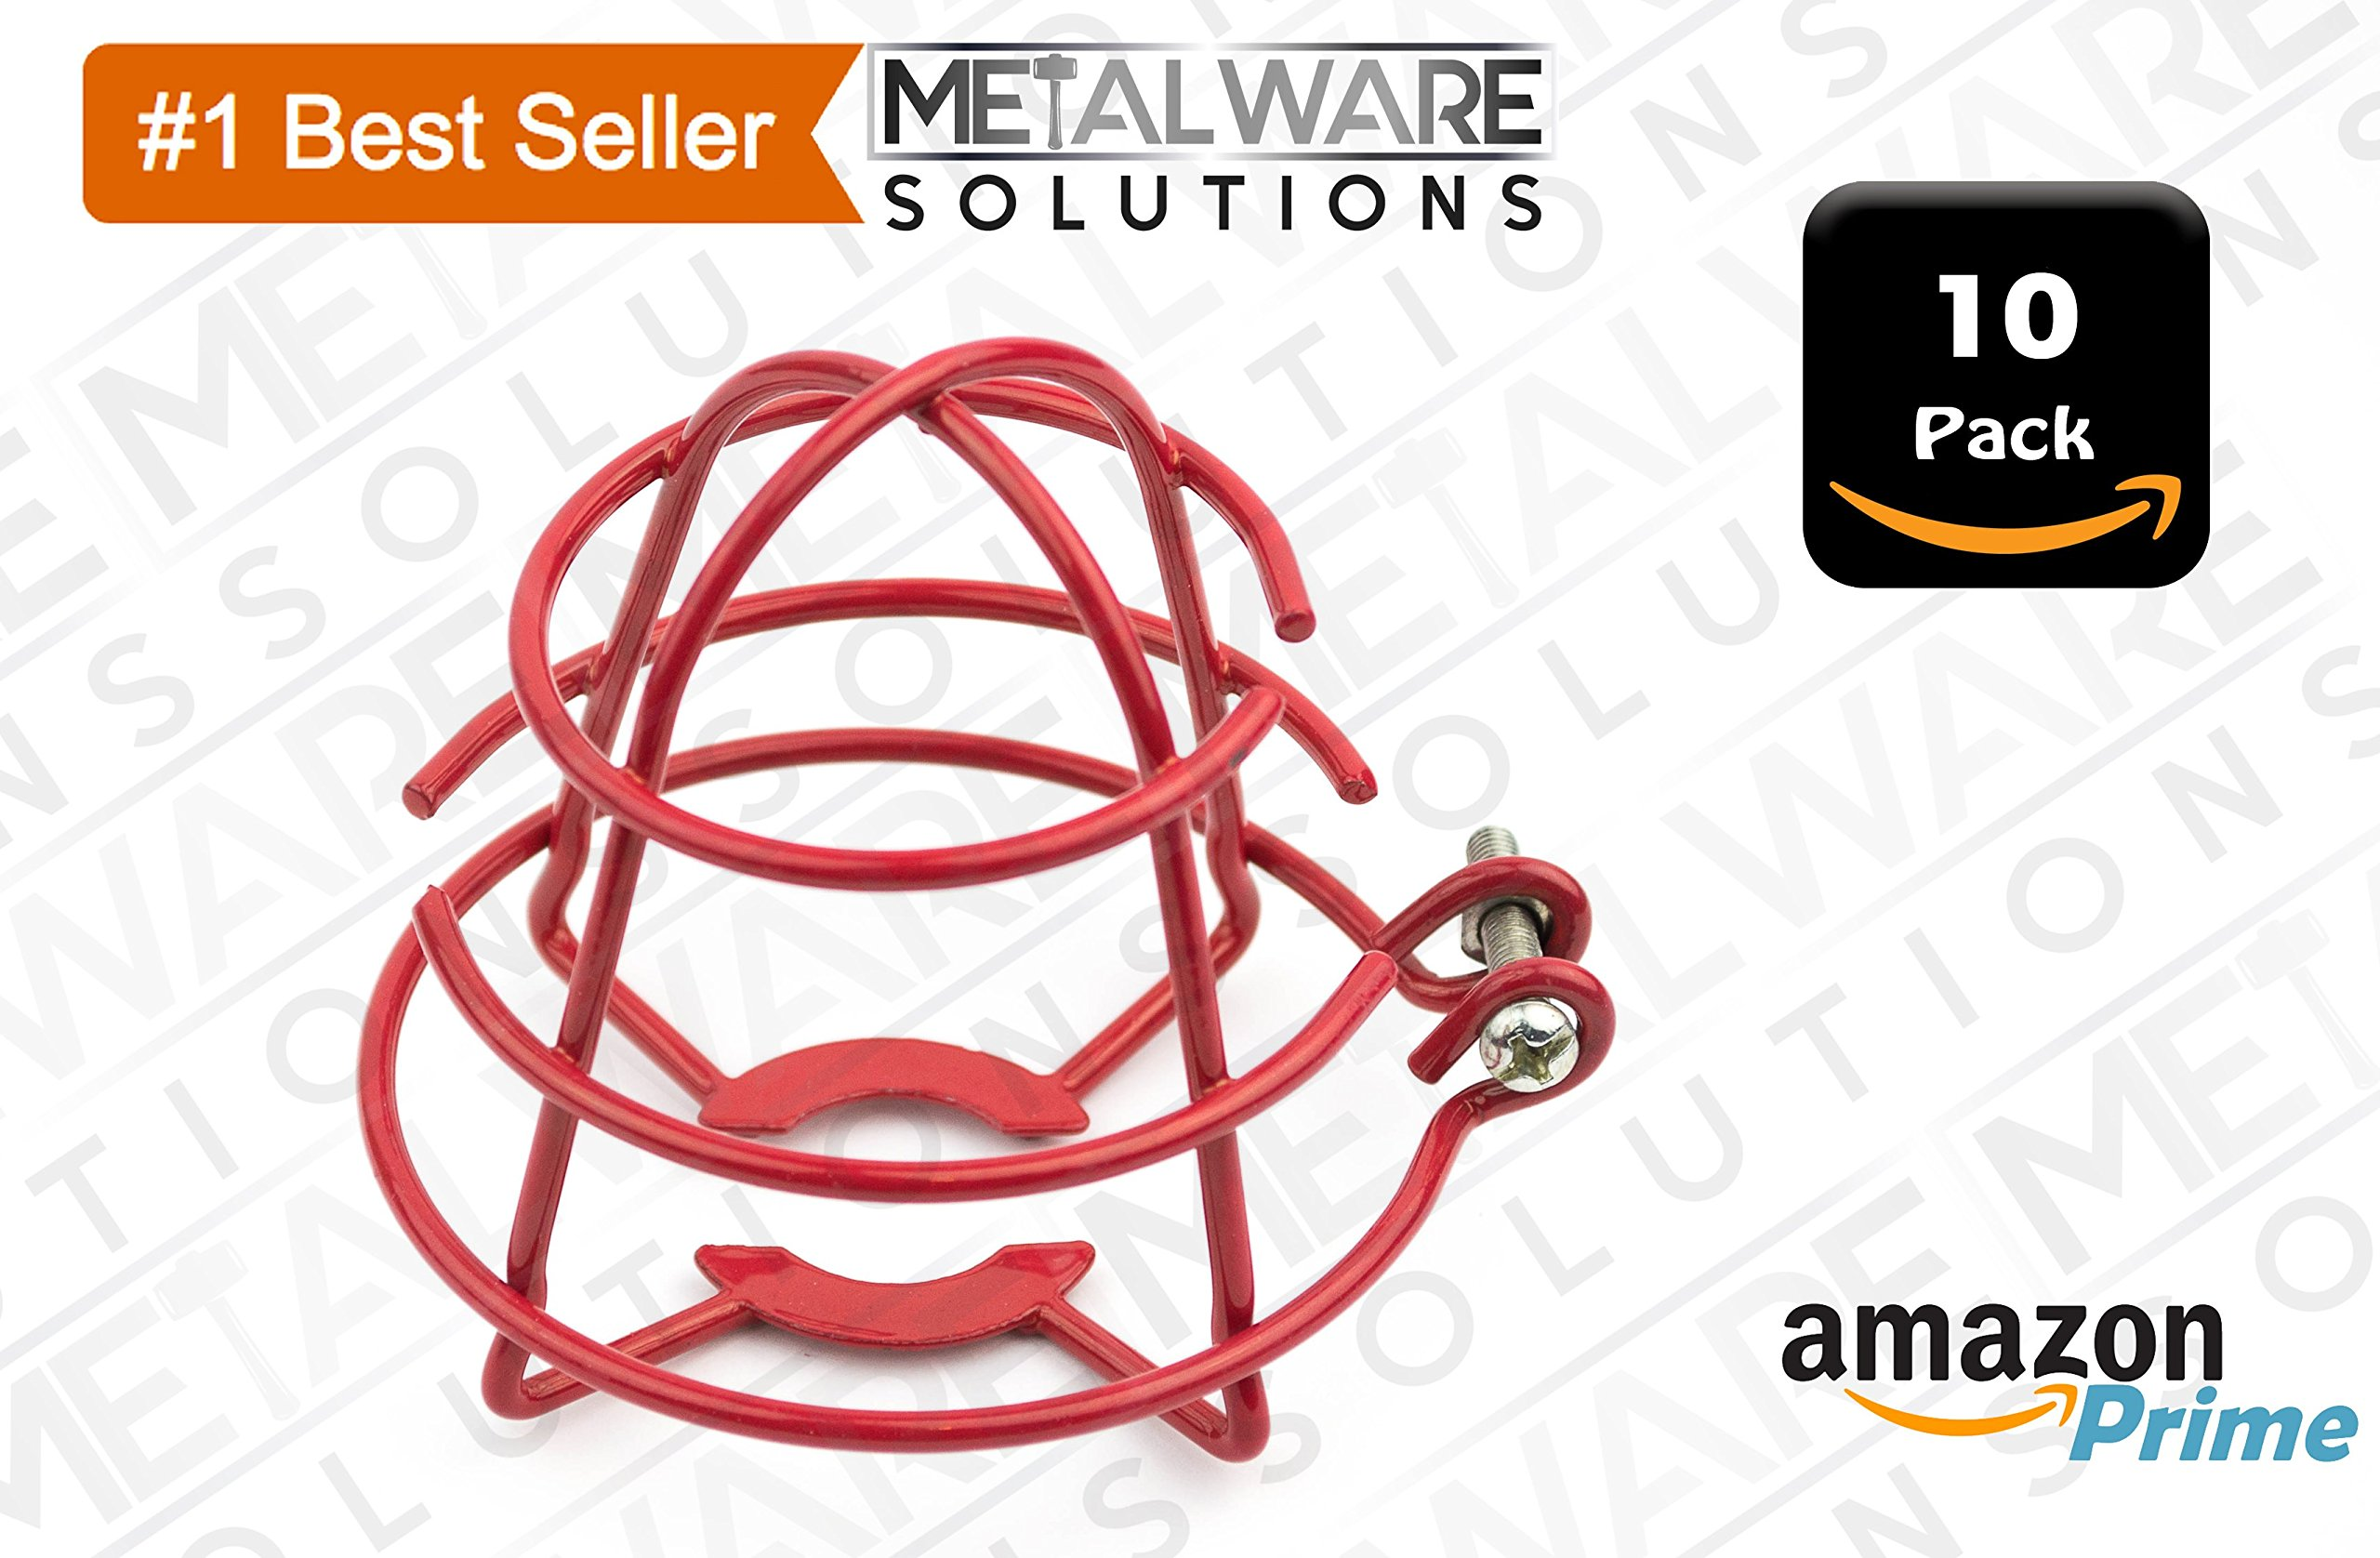 10 Pack Metalware Solutions Red Fire Sprinkler Head Guard with Easy Screw Cover for 1/2'' IPS Head